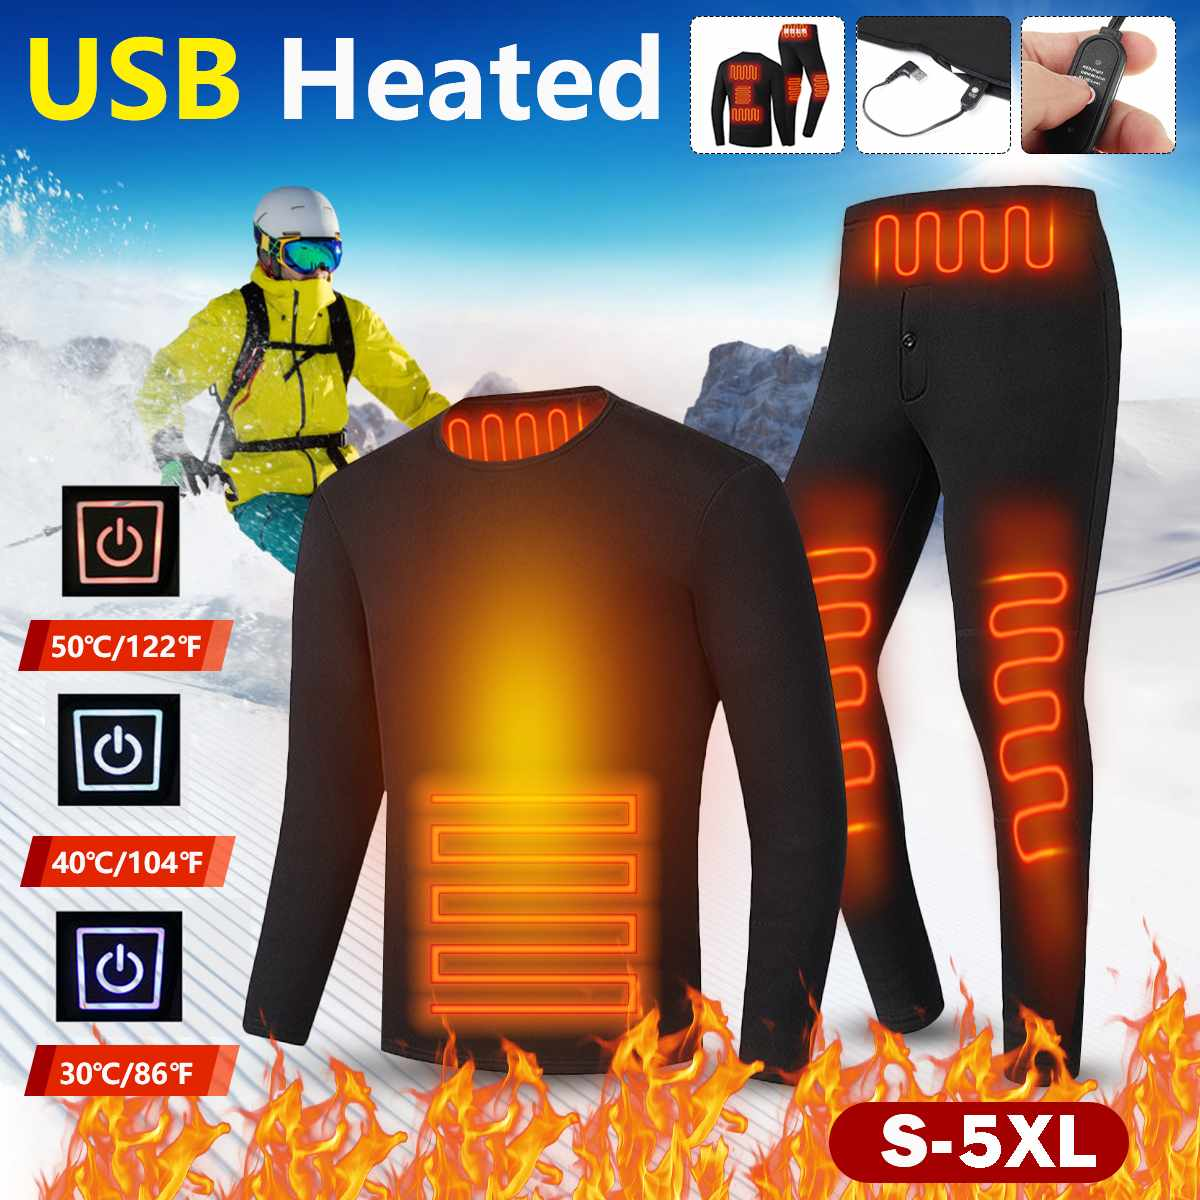 S-5XL Thermal Underwear For Men Thicken Plush Clothes Winter Seamless Antibacterial Warm Intimates Long Johns Sleeve Shaped Sets